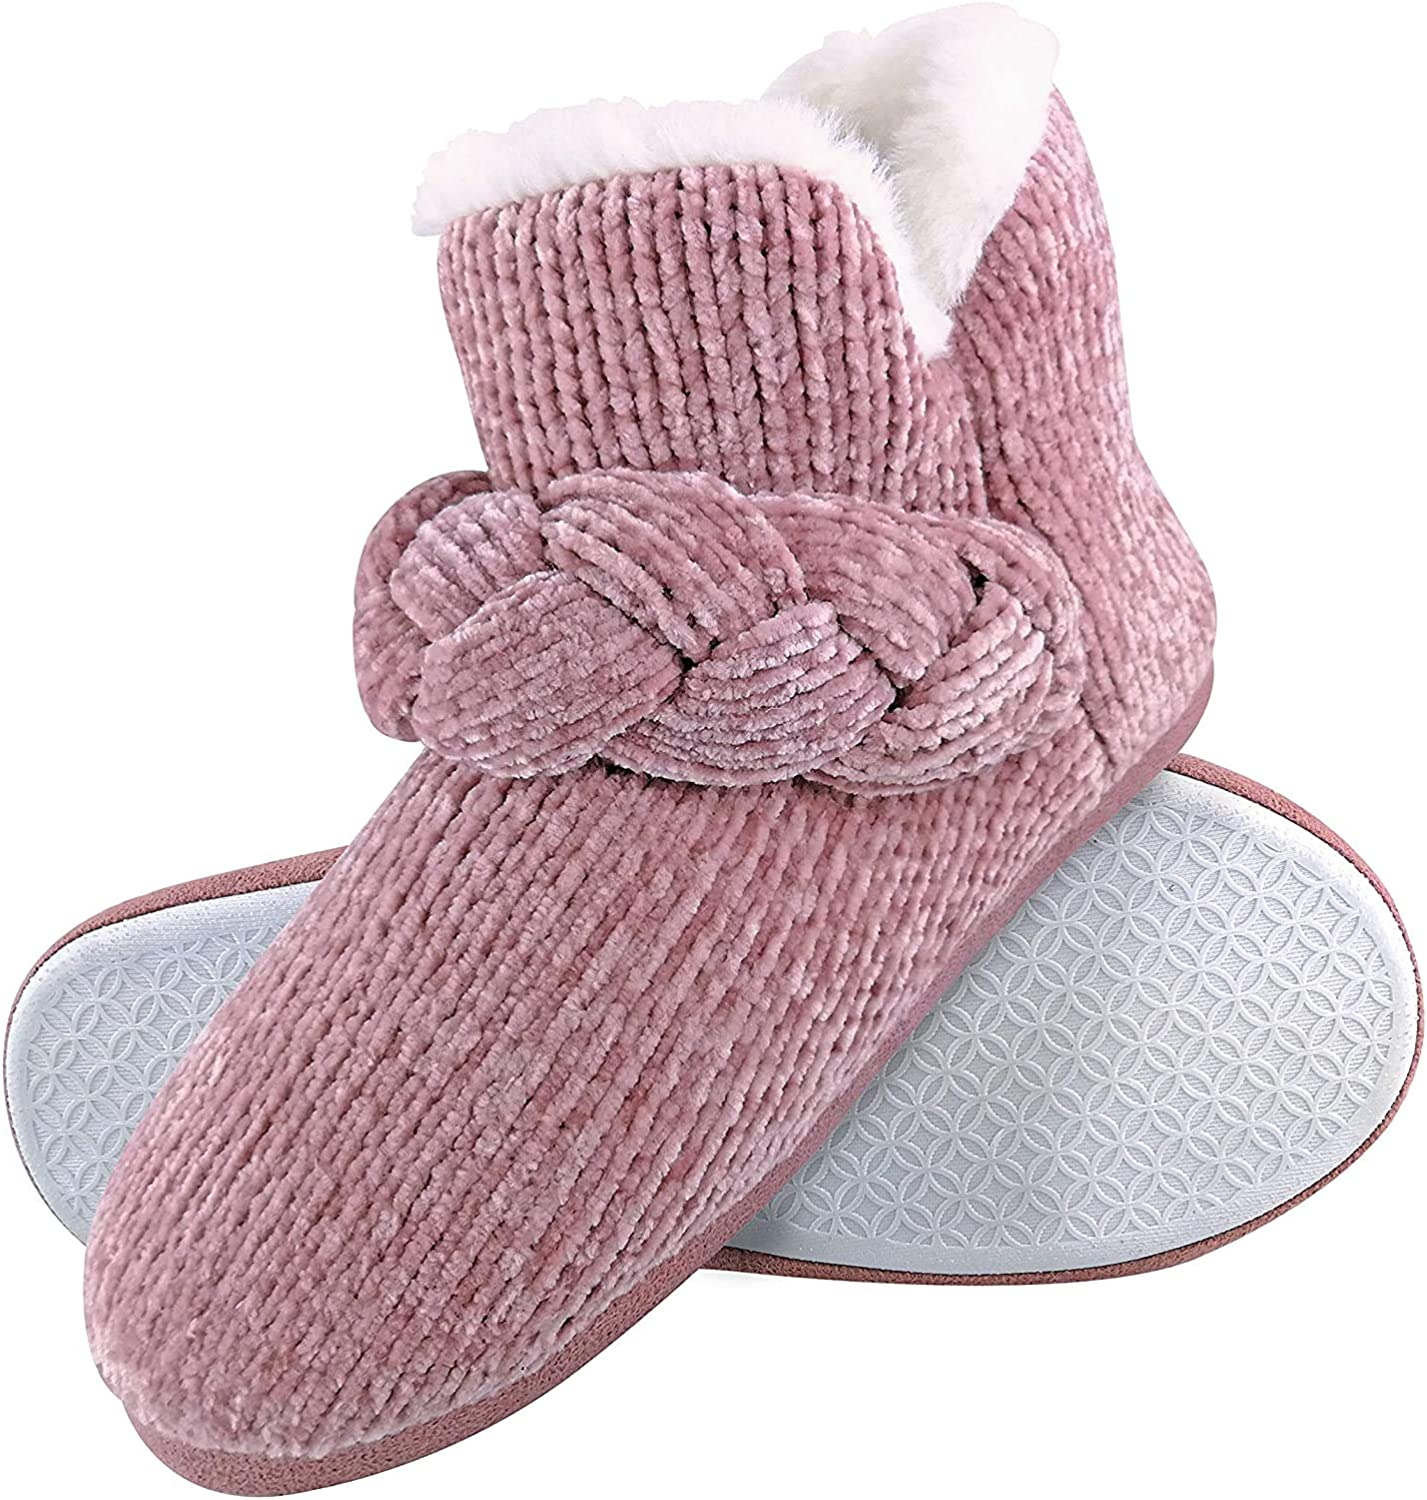 Dunlop - Womens Cute High Top Faux Fur Indoor Slipper Ankle Booties House Boots